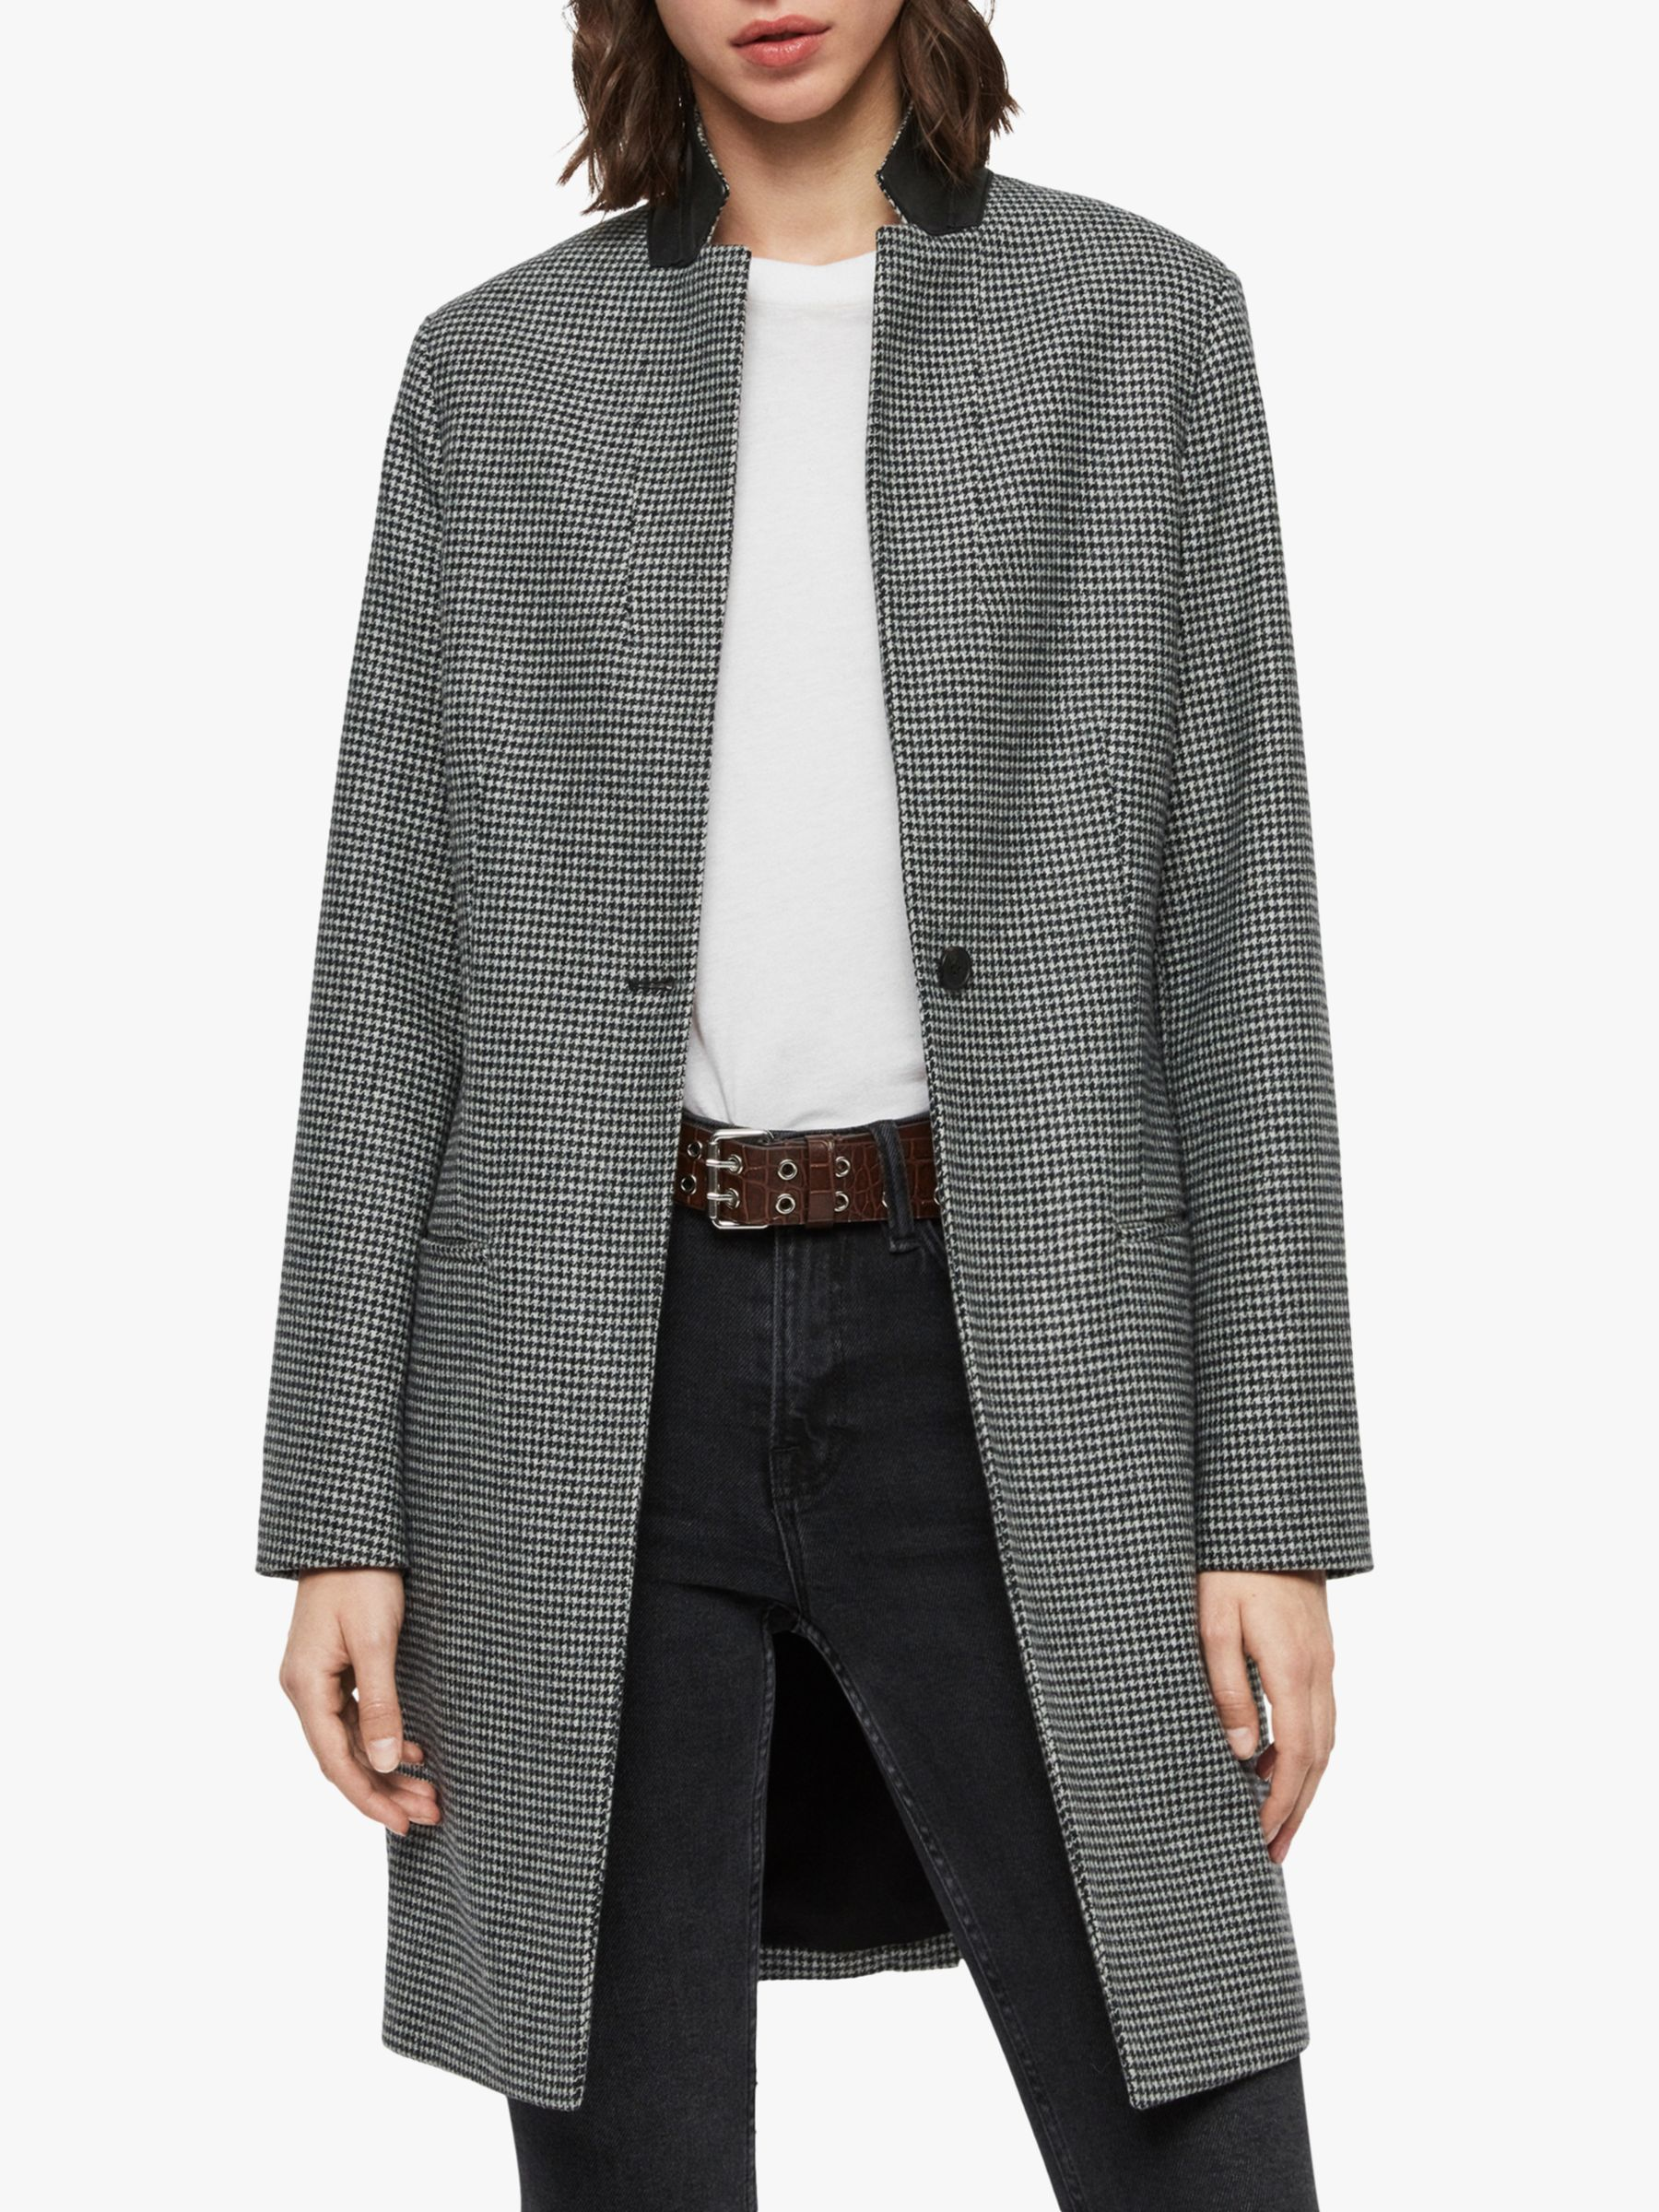 AllSaints Leni Wool Puppytooth Coat, Monochrome at John